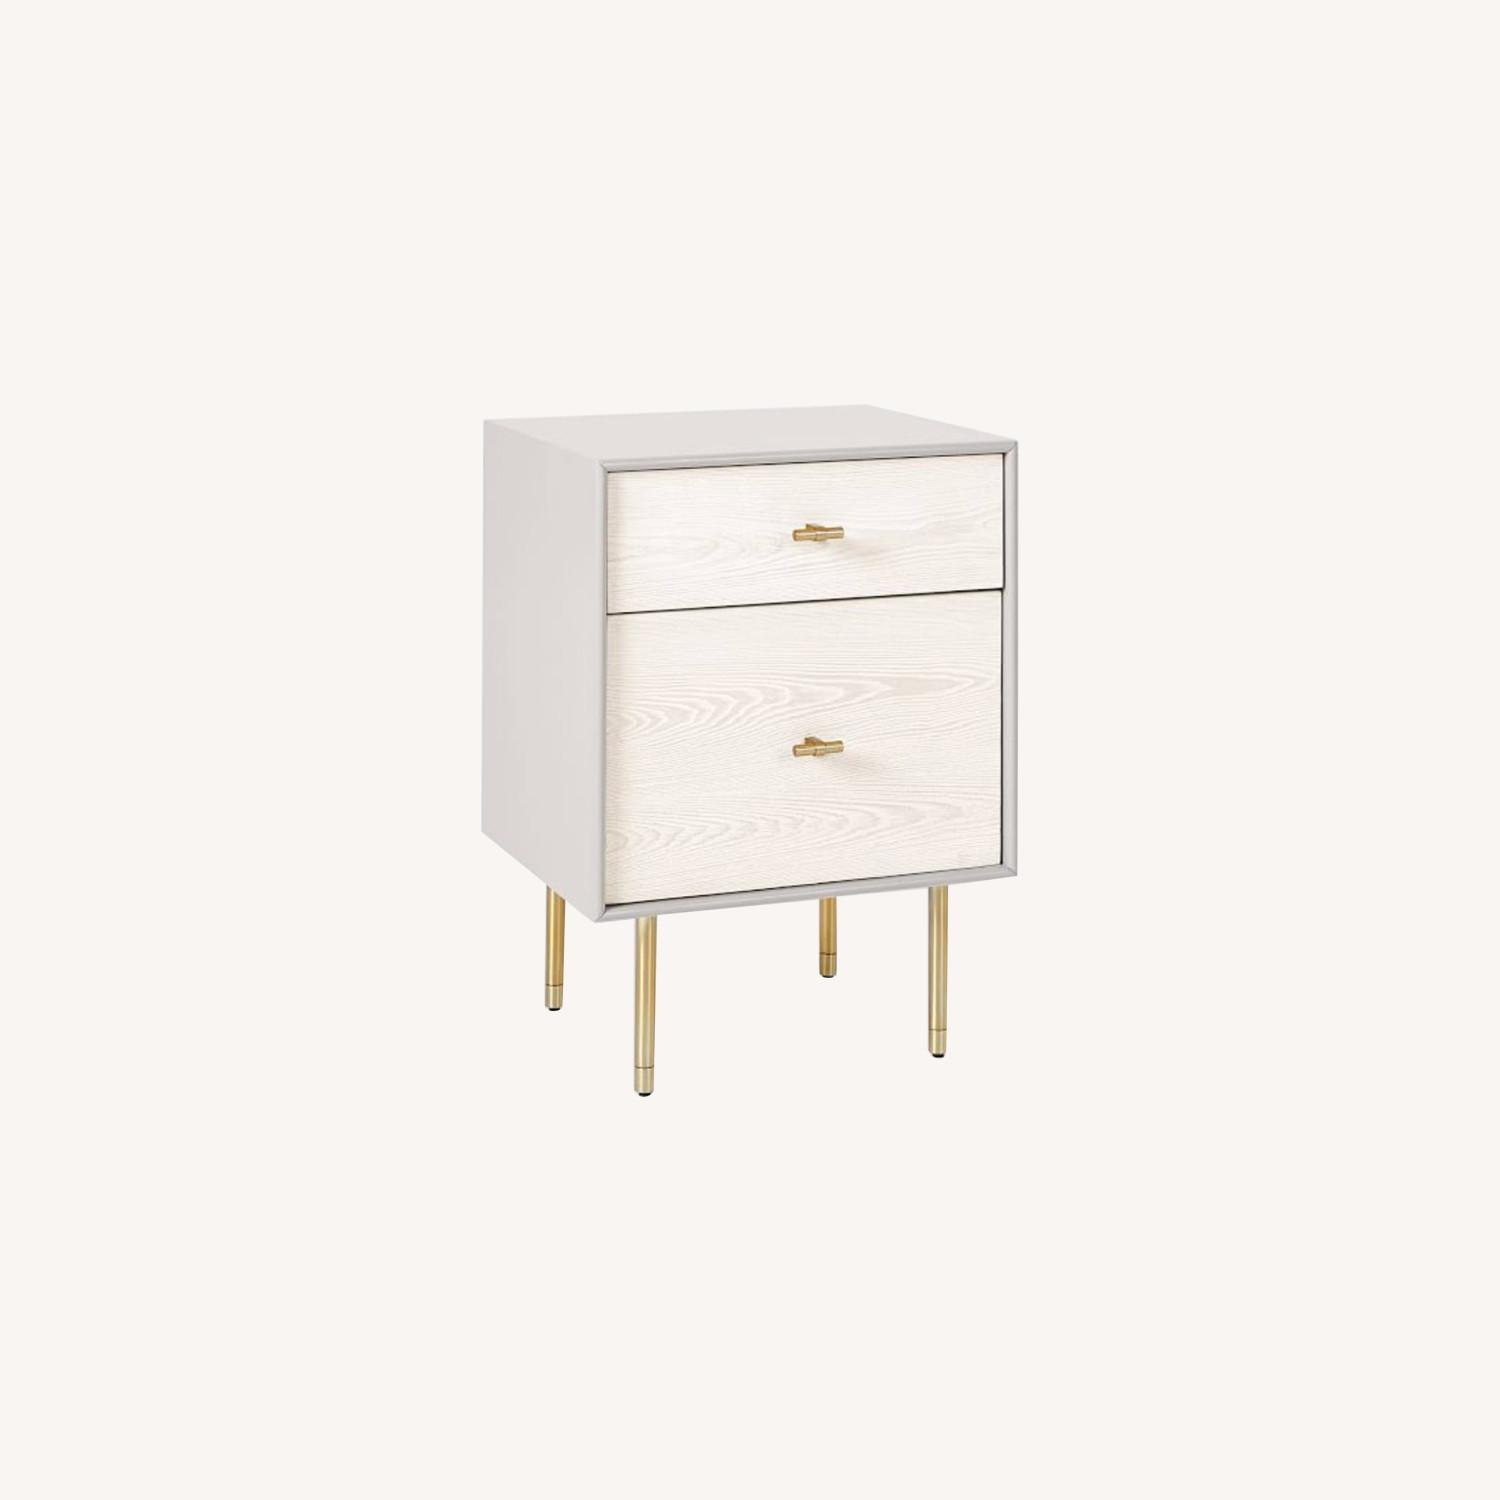 West Elm Modernist Wood & Lacquer Nightstand - image-0